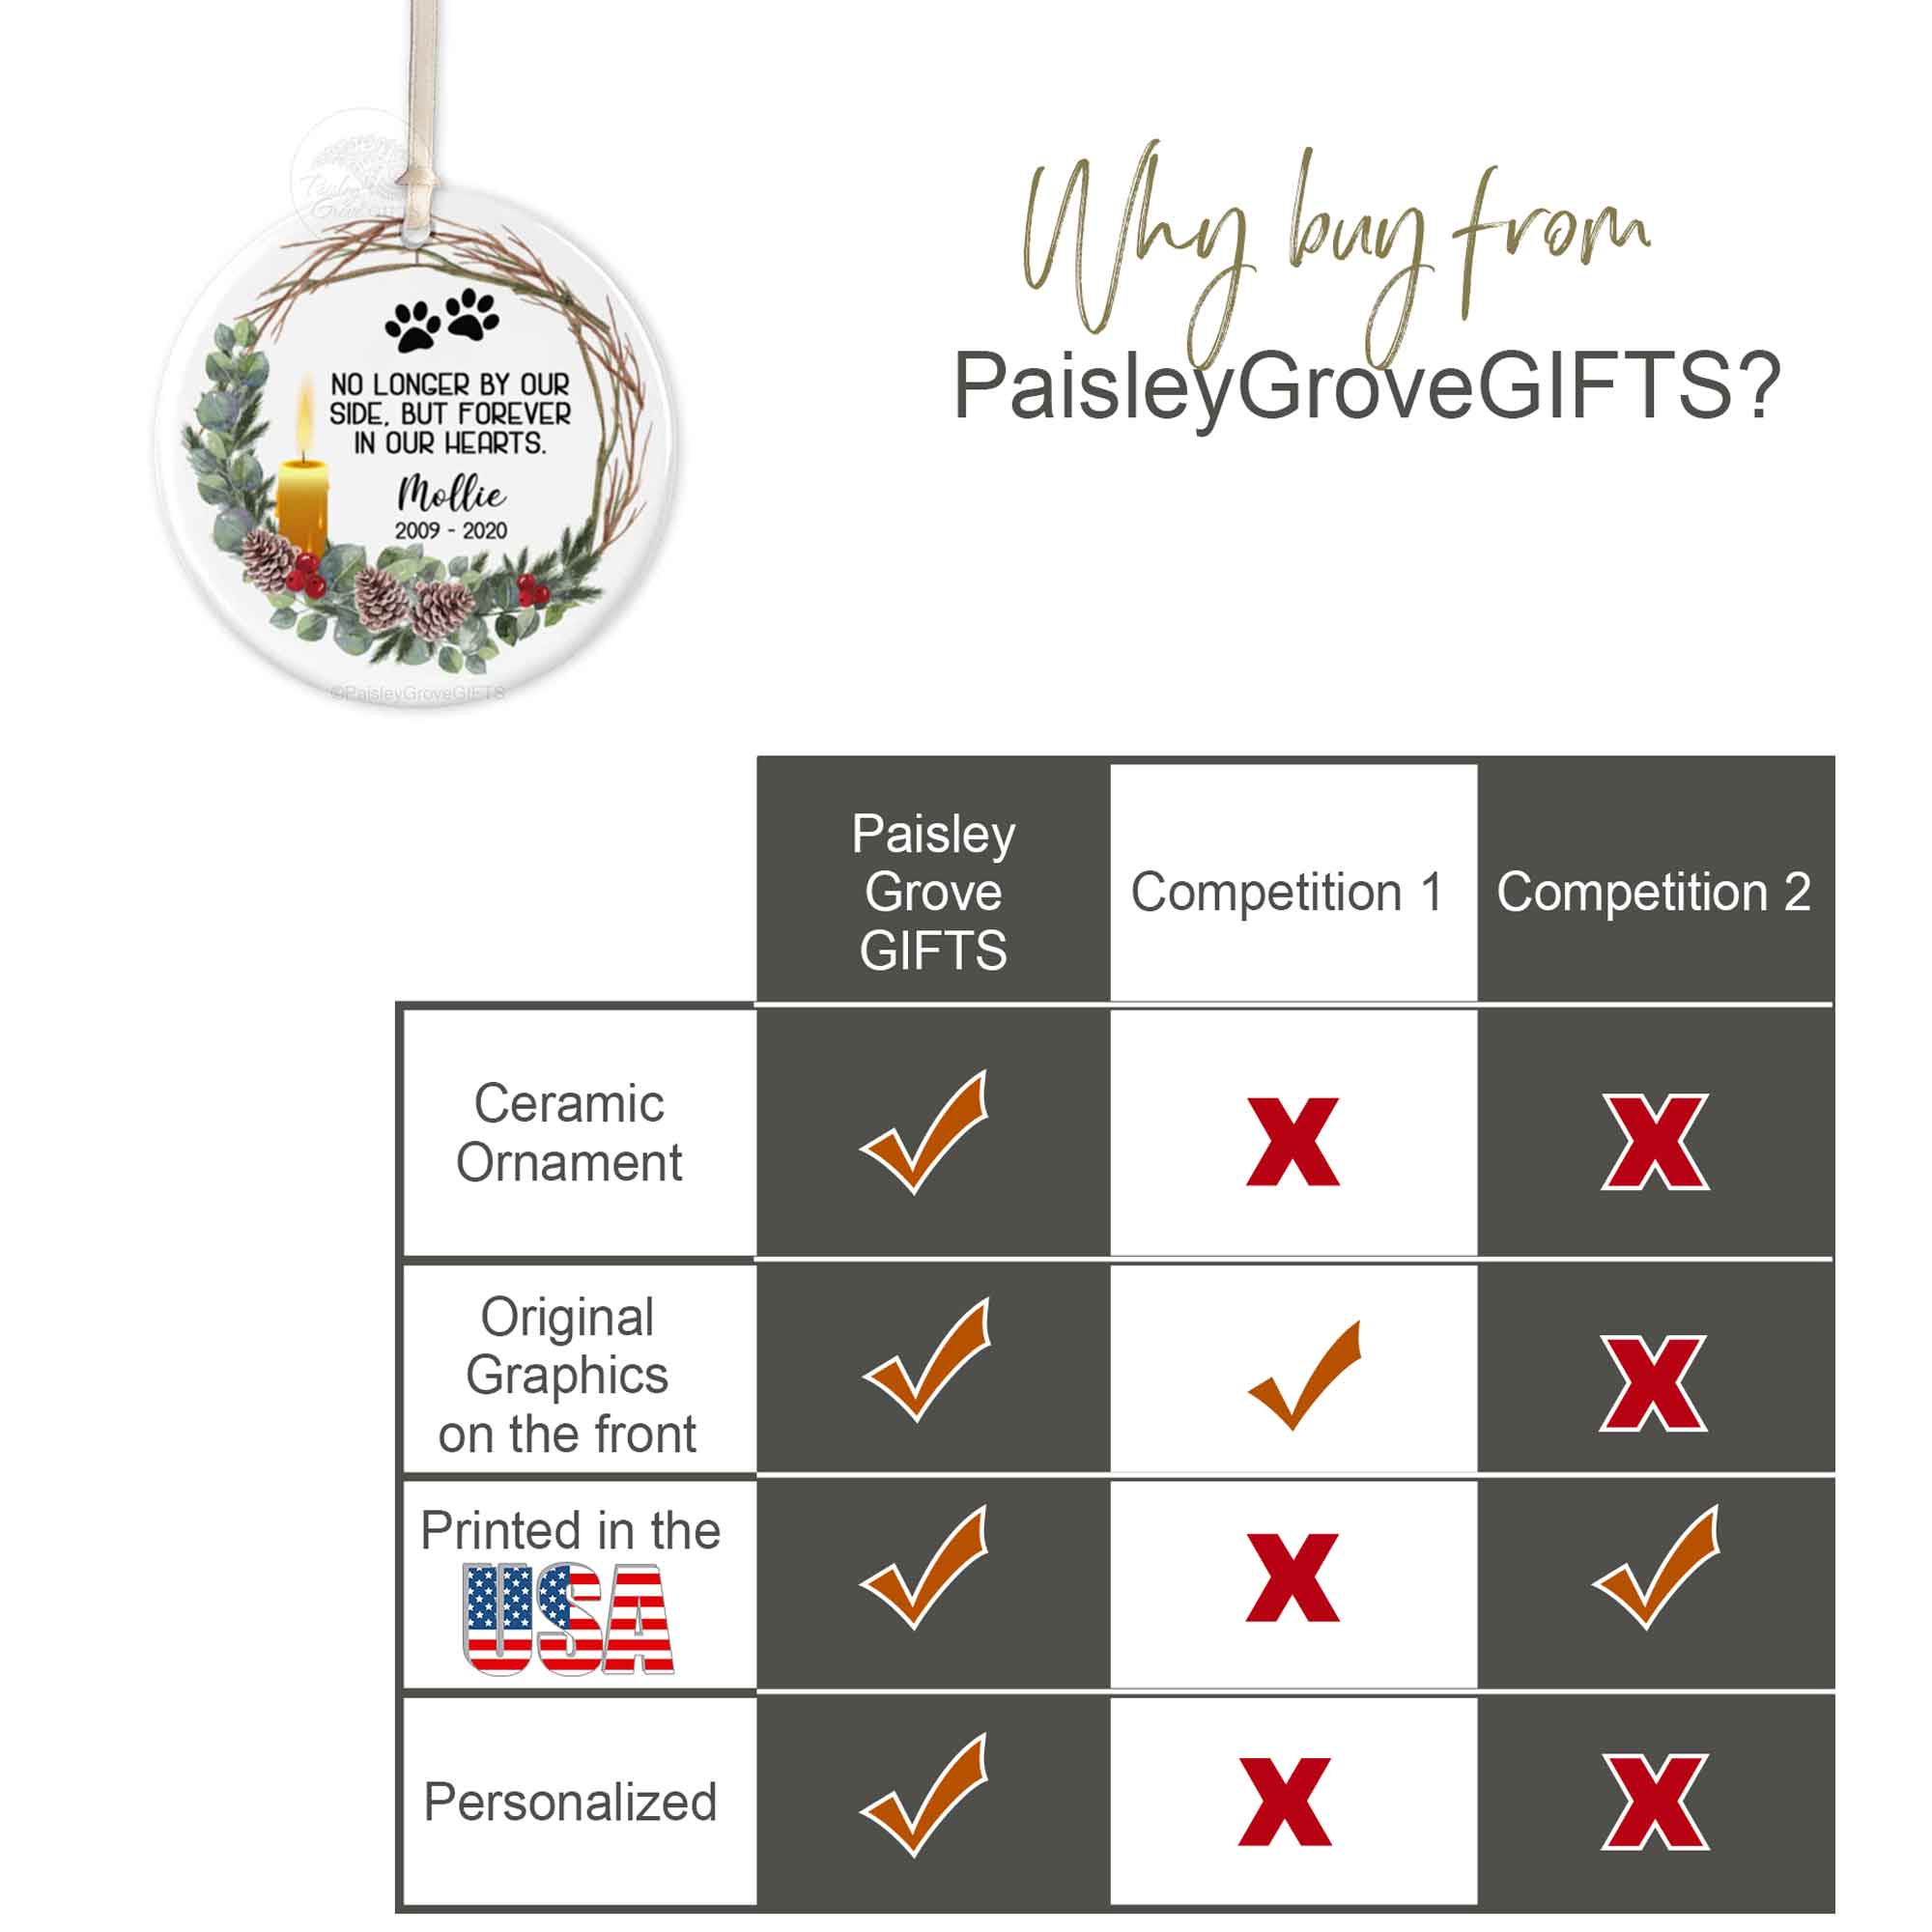 CopyrightPaisleyGroveGIFTS S522e Quality Ornament Superior to Others, Comparison Chart for Personalized Pet Memorial Gift